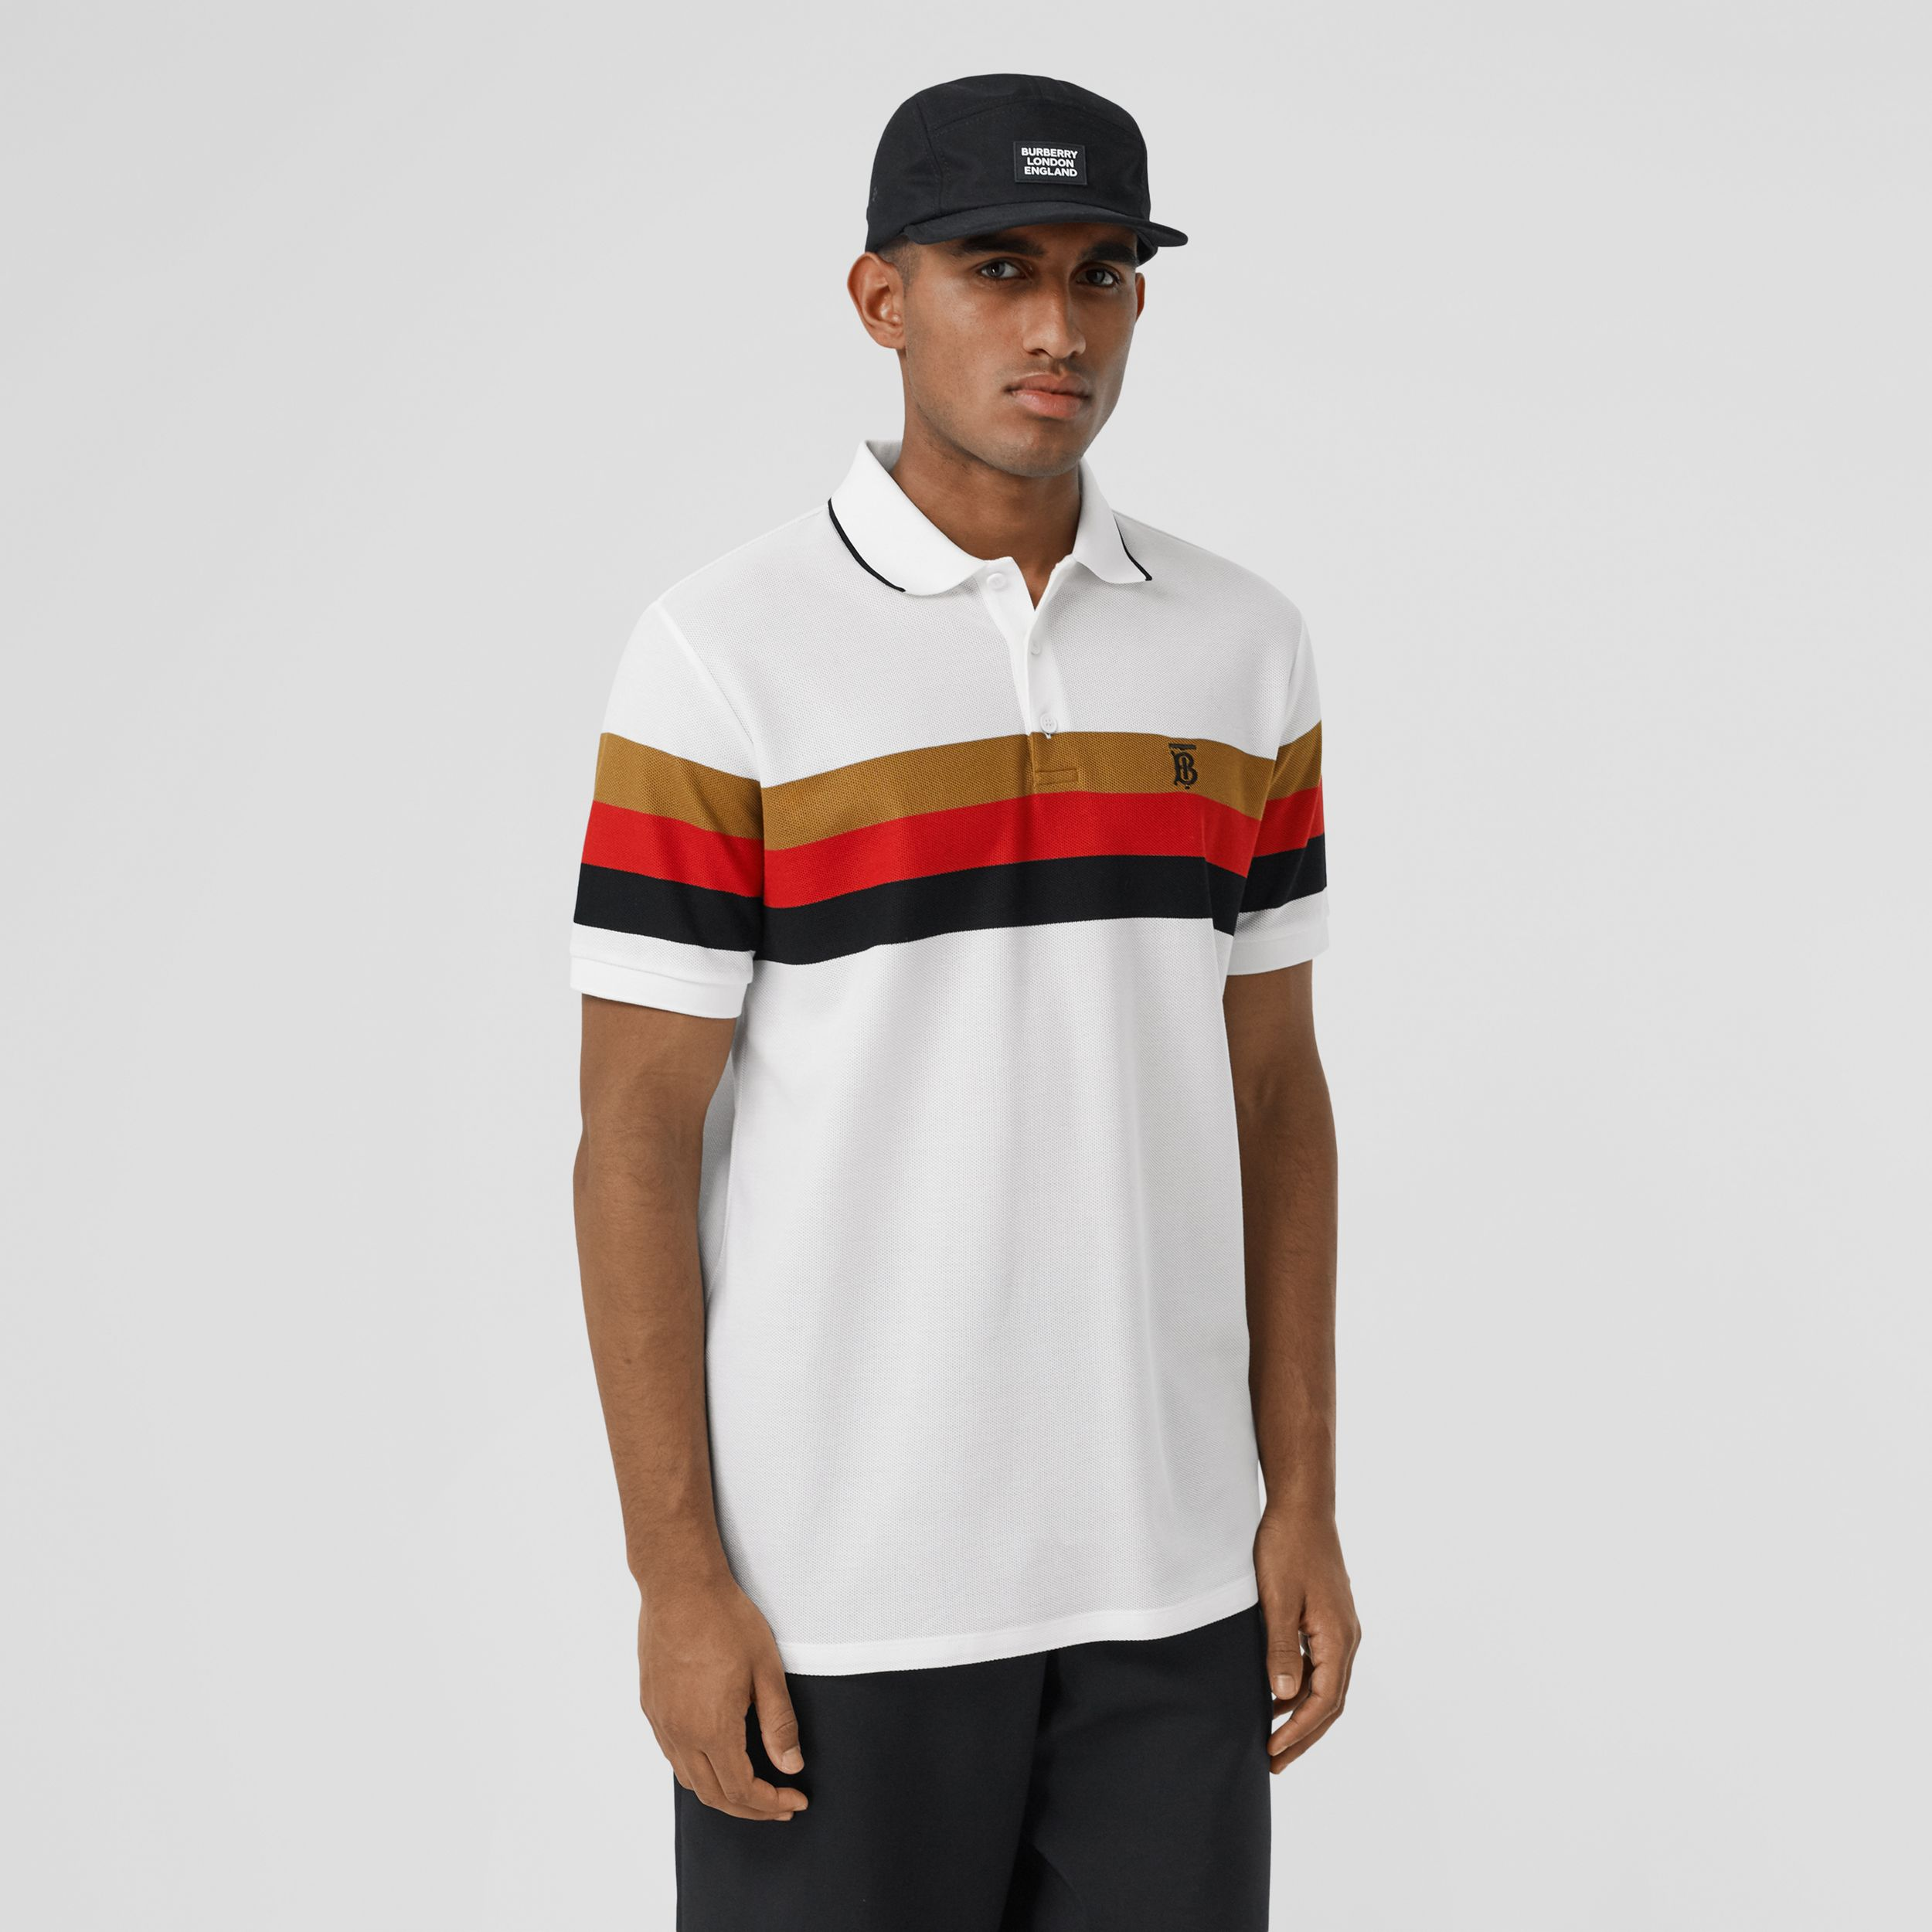 Monogram Motif Striped Cotton Polo Shirt in White - Men | Burberry - 1